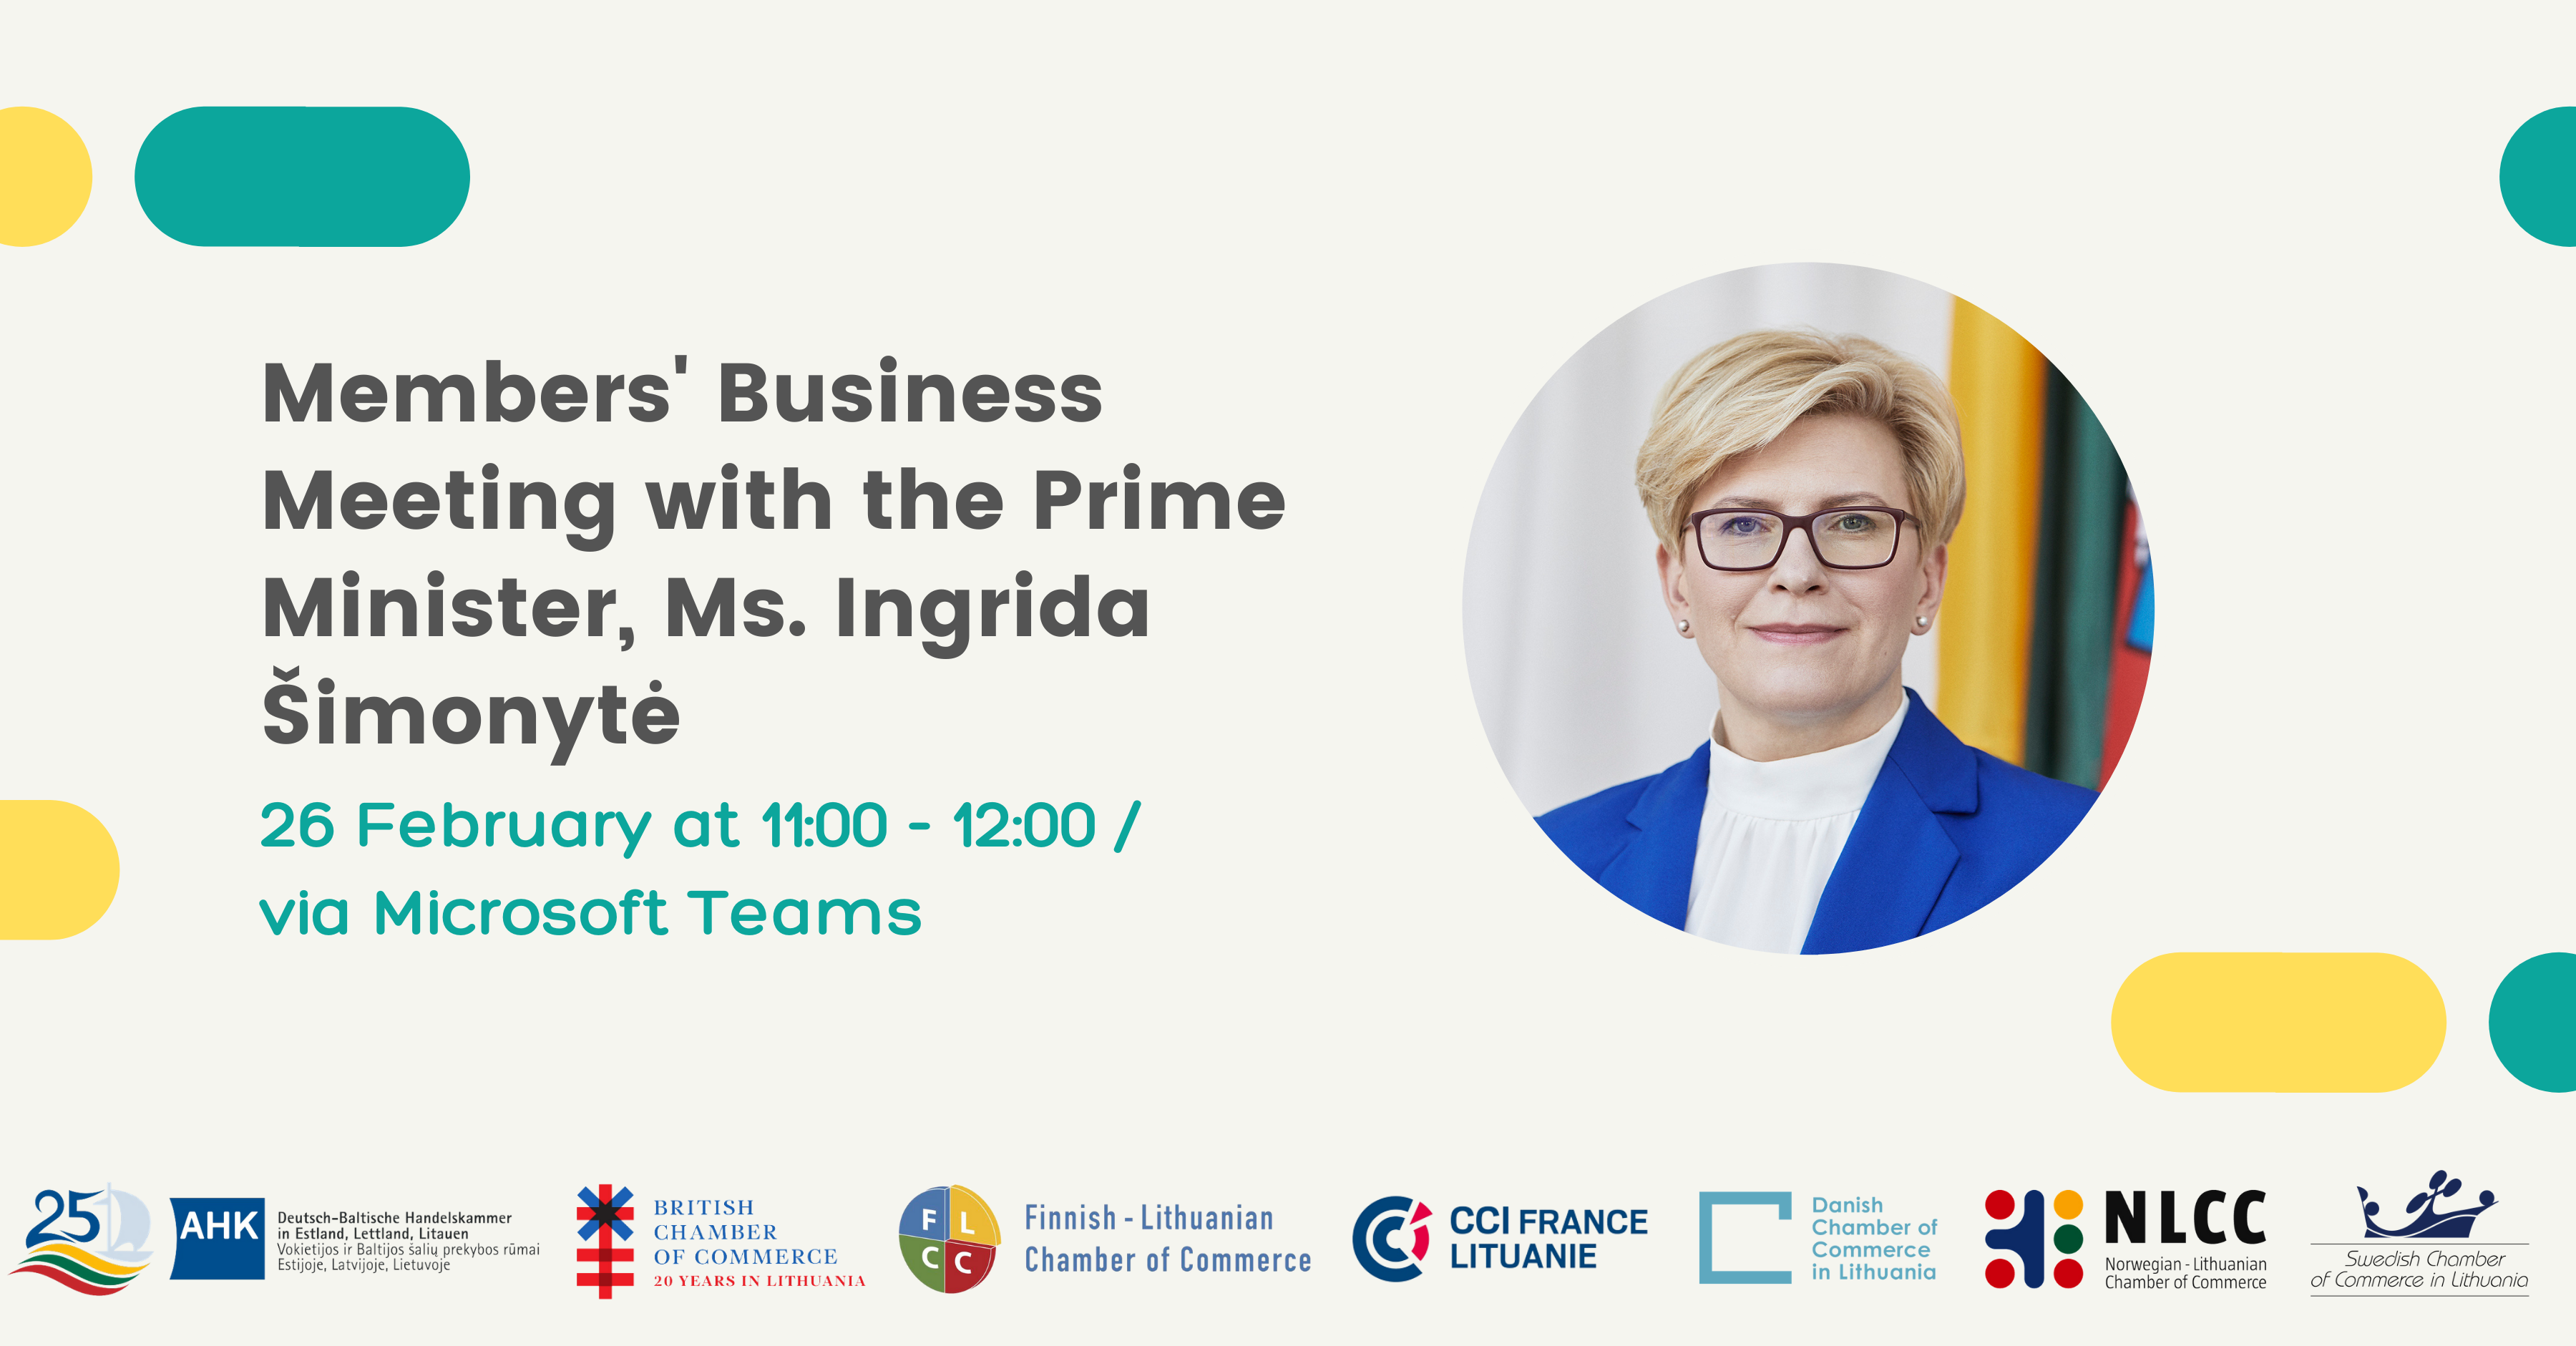 Members' Business Meeting With the Prime Minister Ms. Ingrida Šimonytė